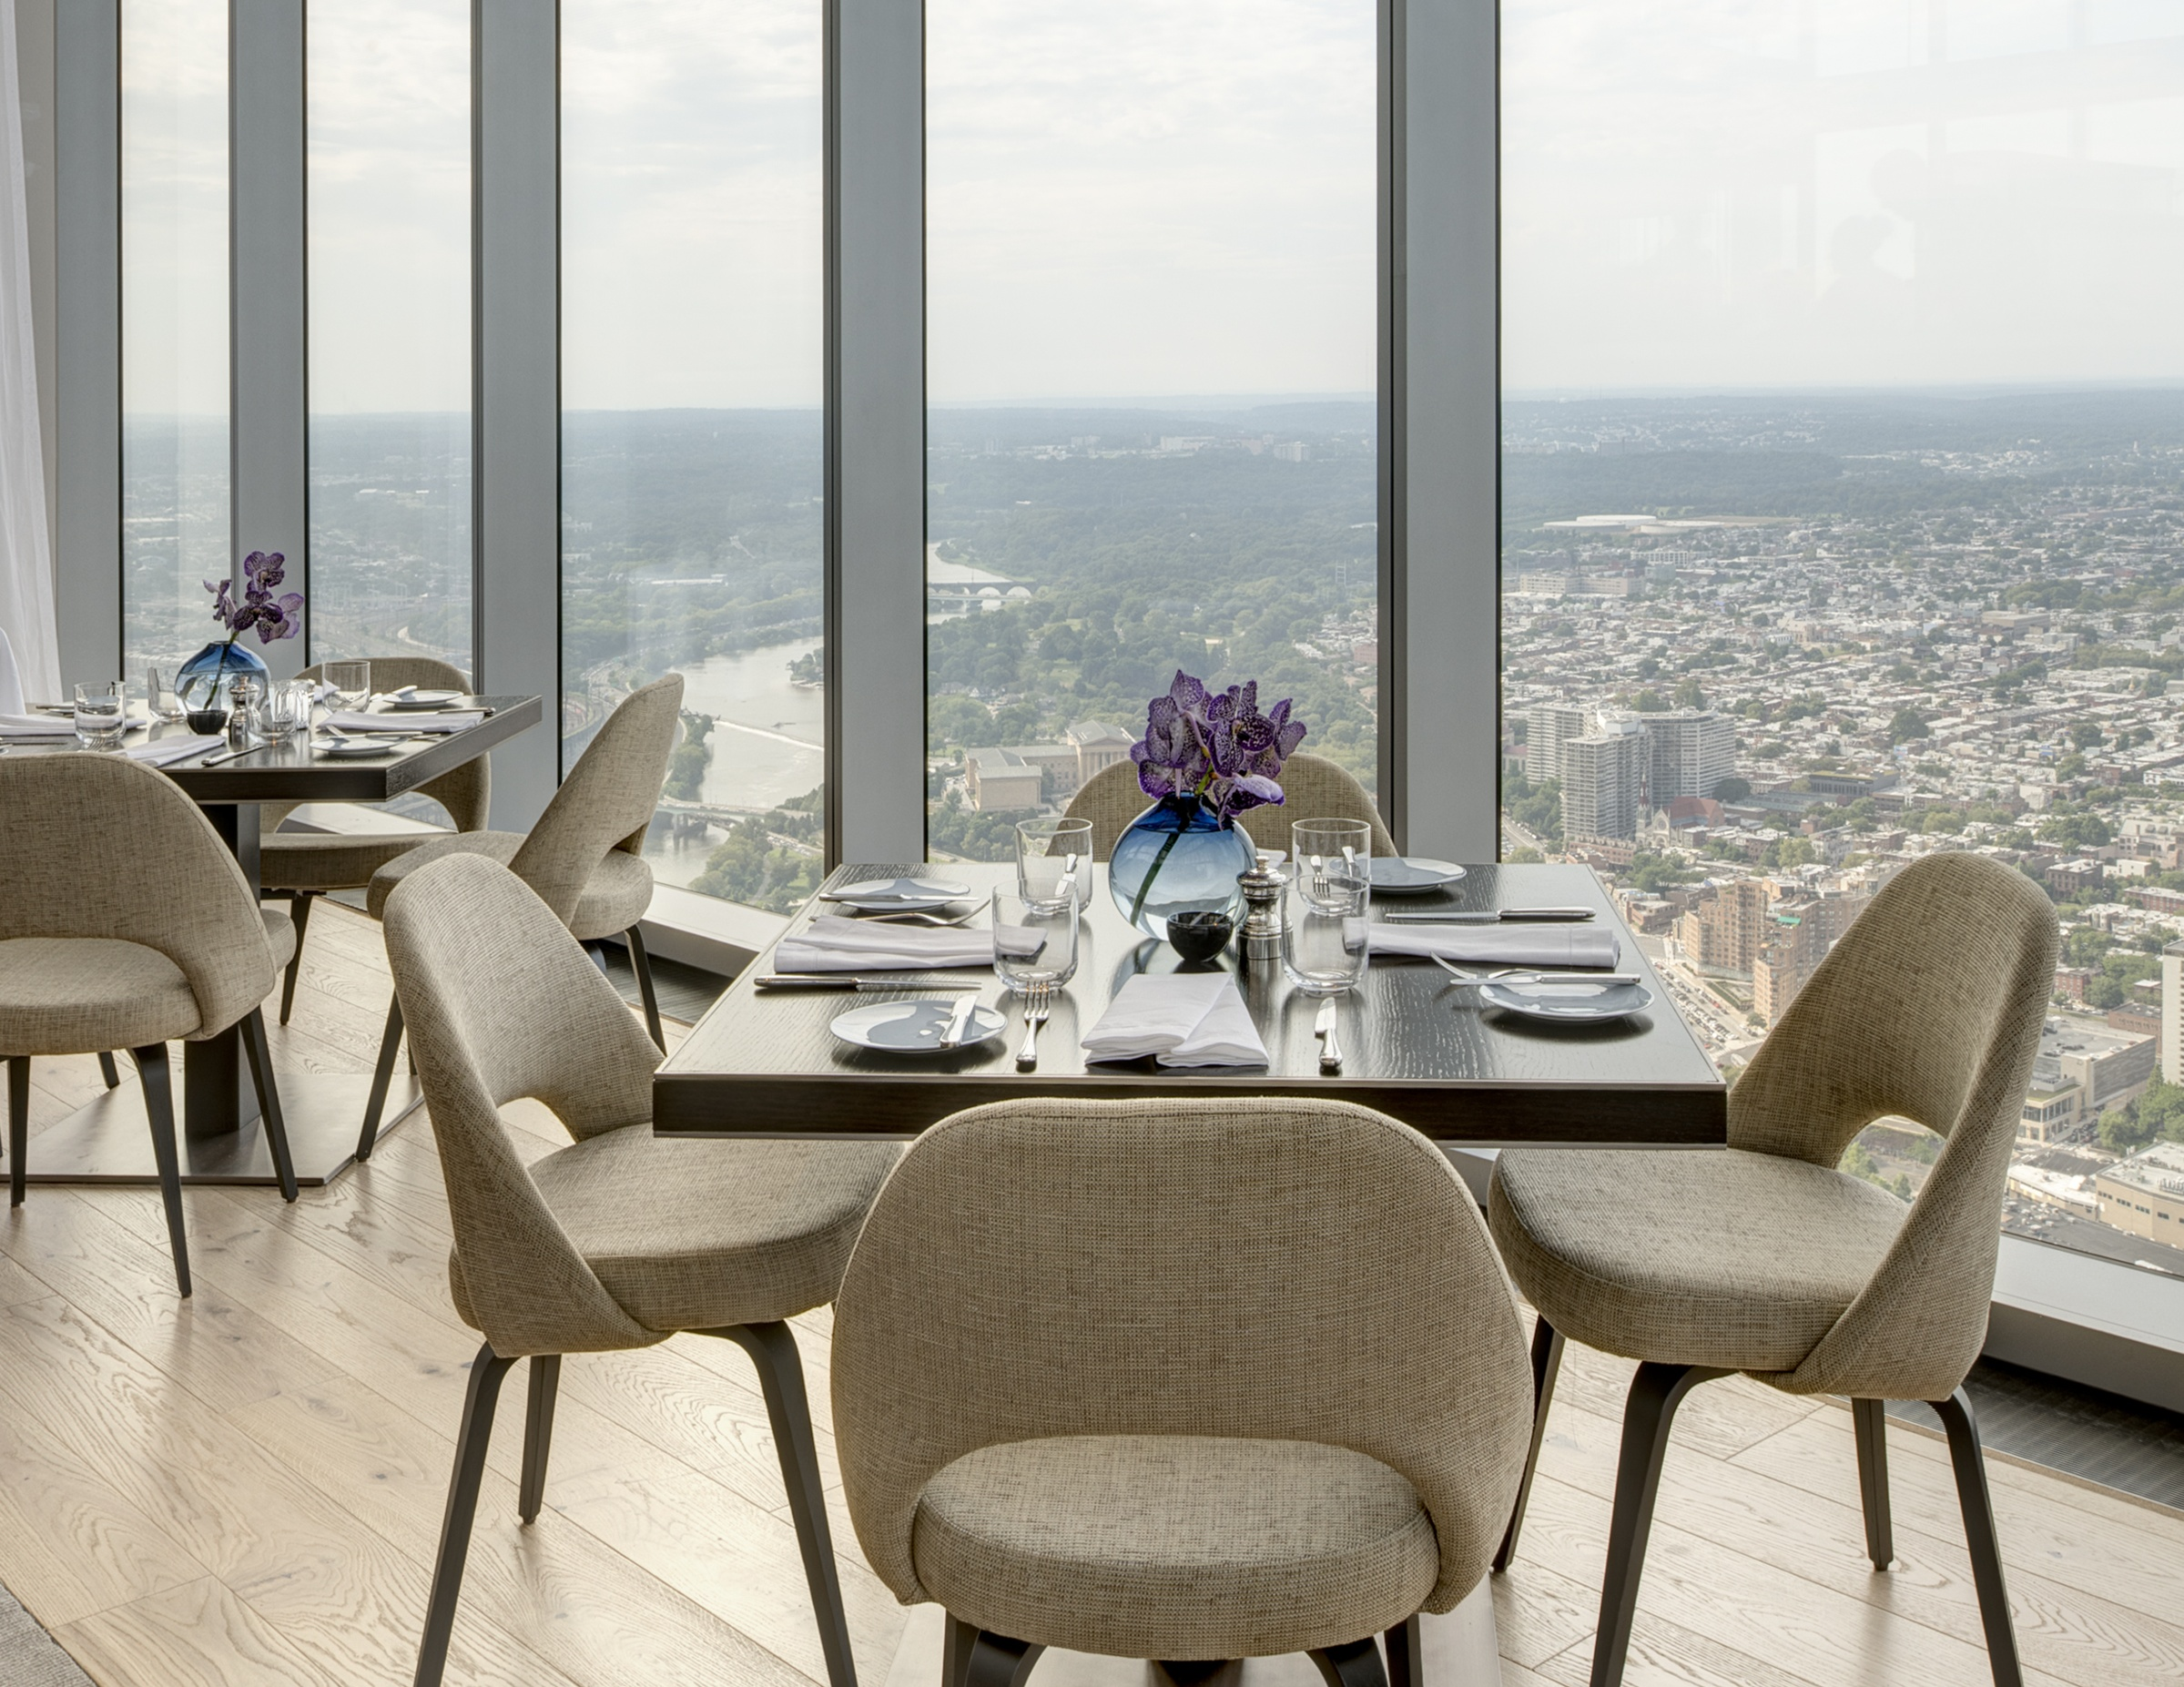 Views from Jean-Georges Philadelphia at the Four Seasons Philadelphia Comcast Center